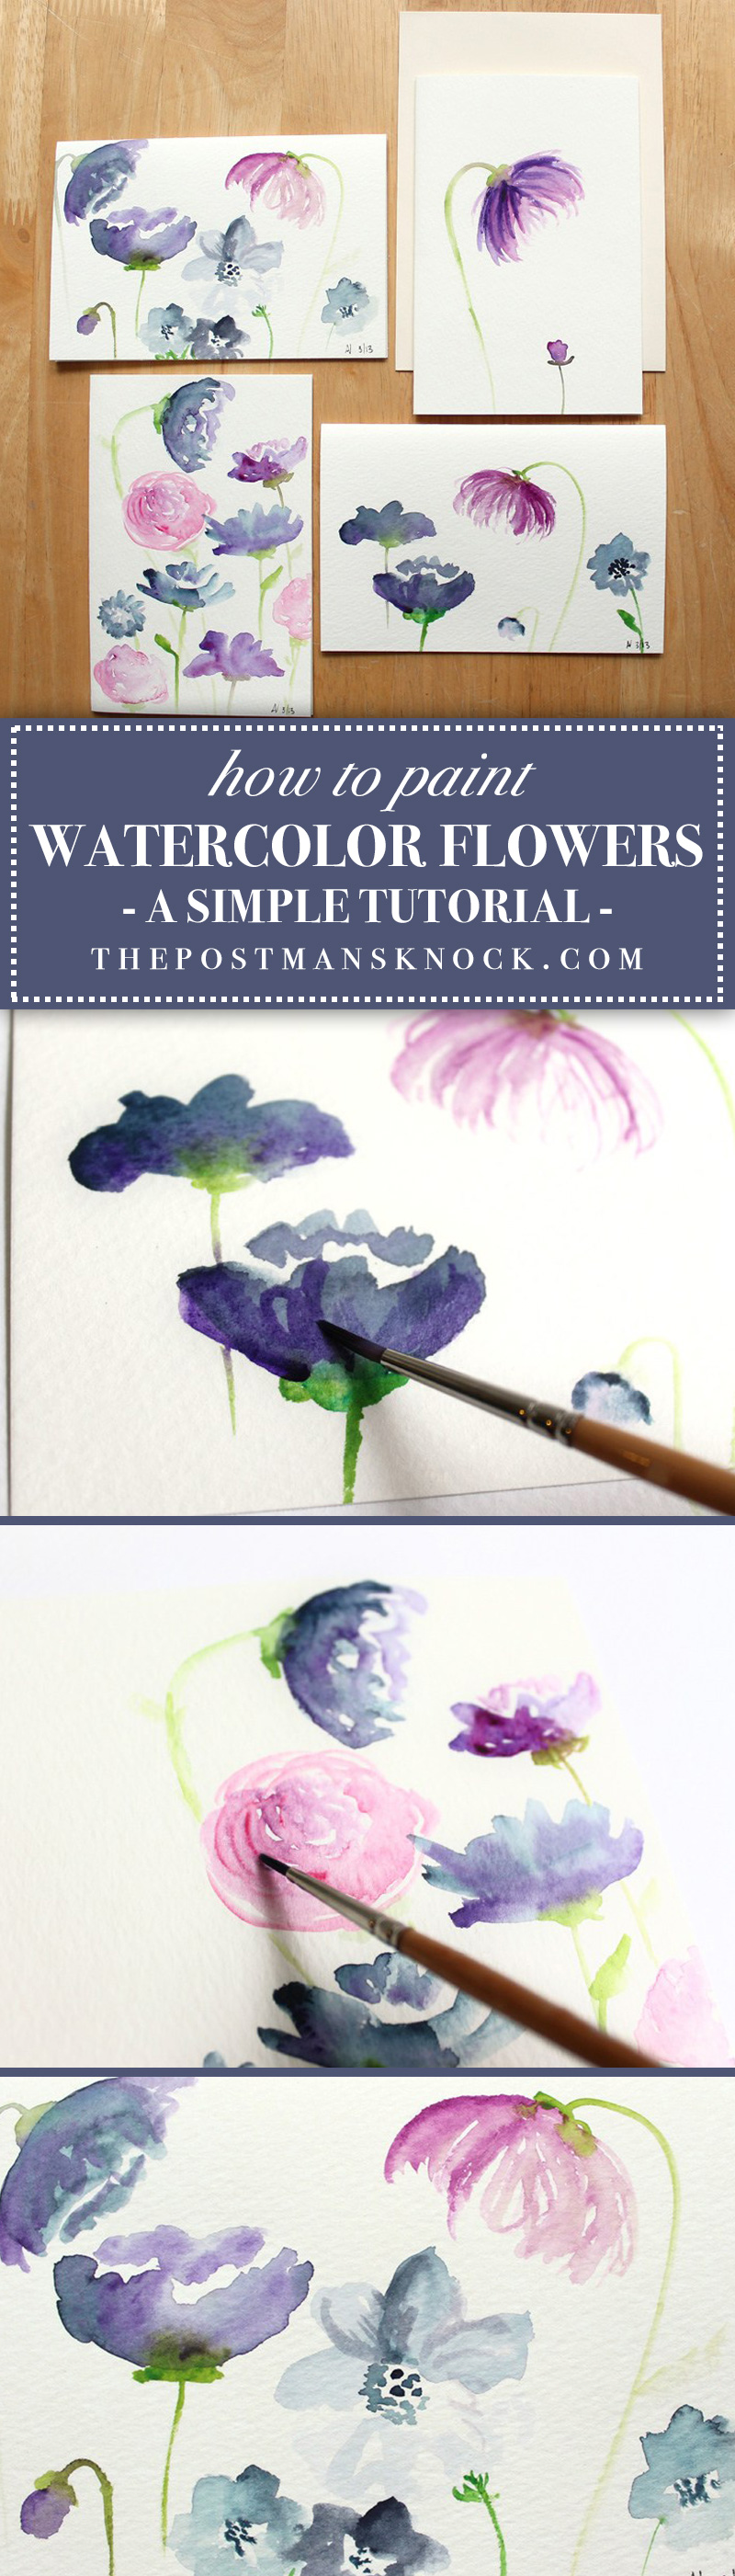 How to Create Watercolor Flowers: a Tutorial | The Postman's Knock